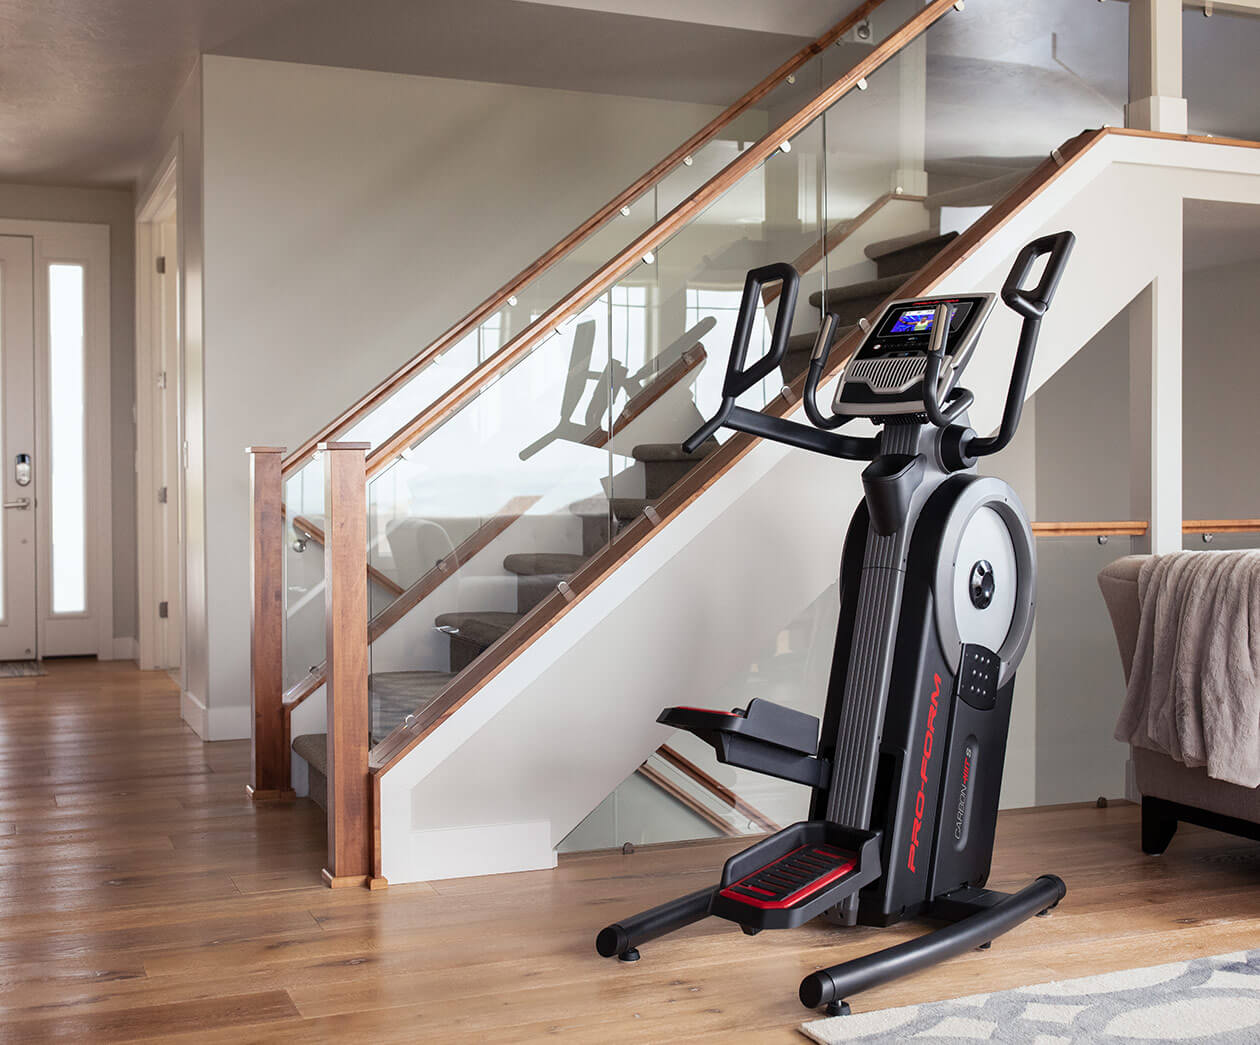 Carbon HIIT H7 stored perfectly right by a stairway.